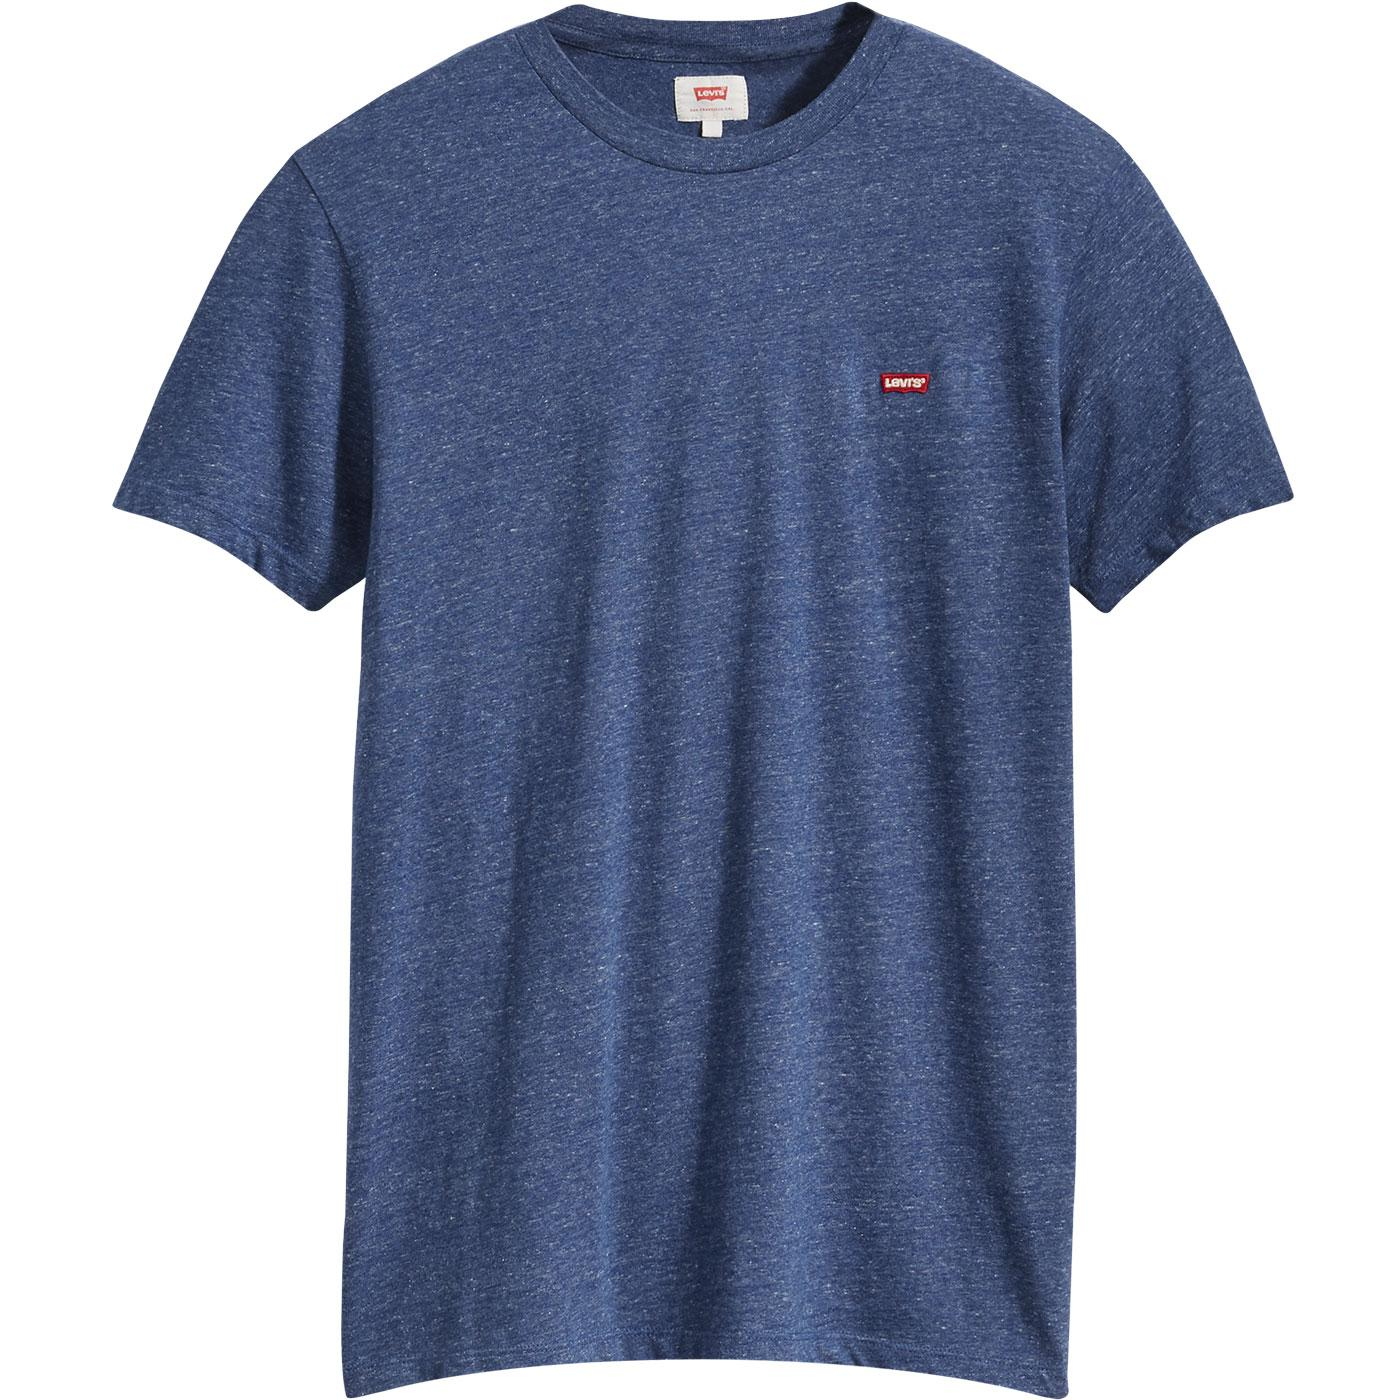 LEVI'S Men's Retro Indie Patch Logo S/S Tee - Blue